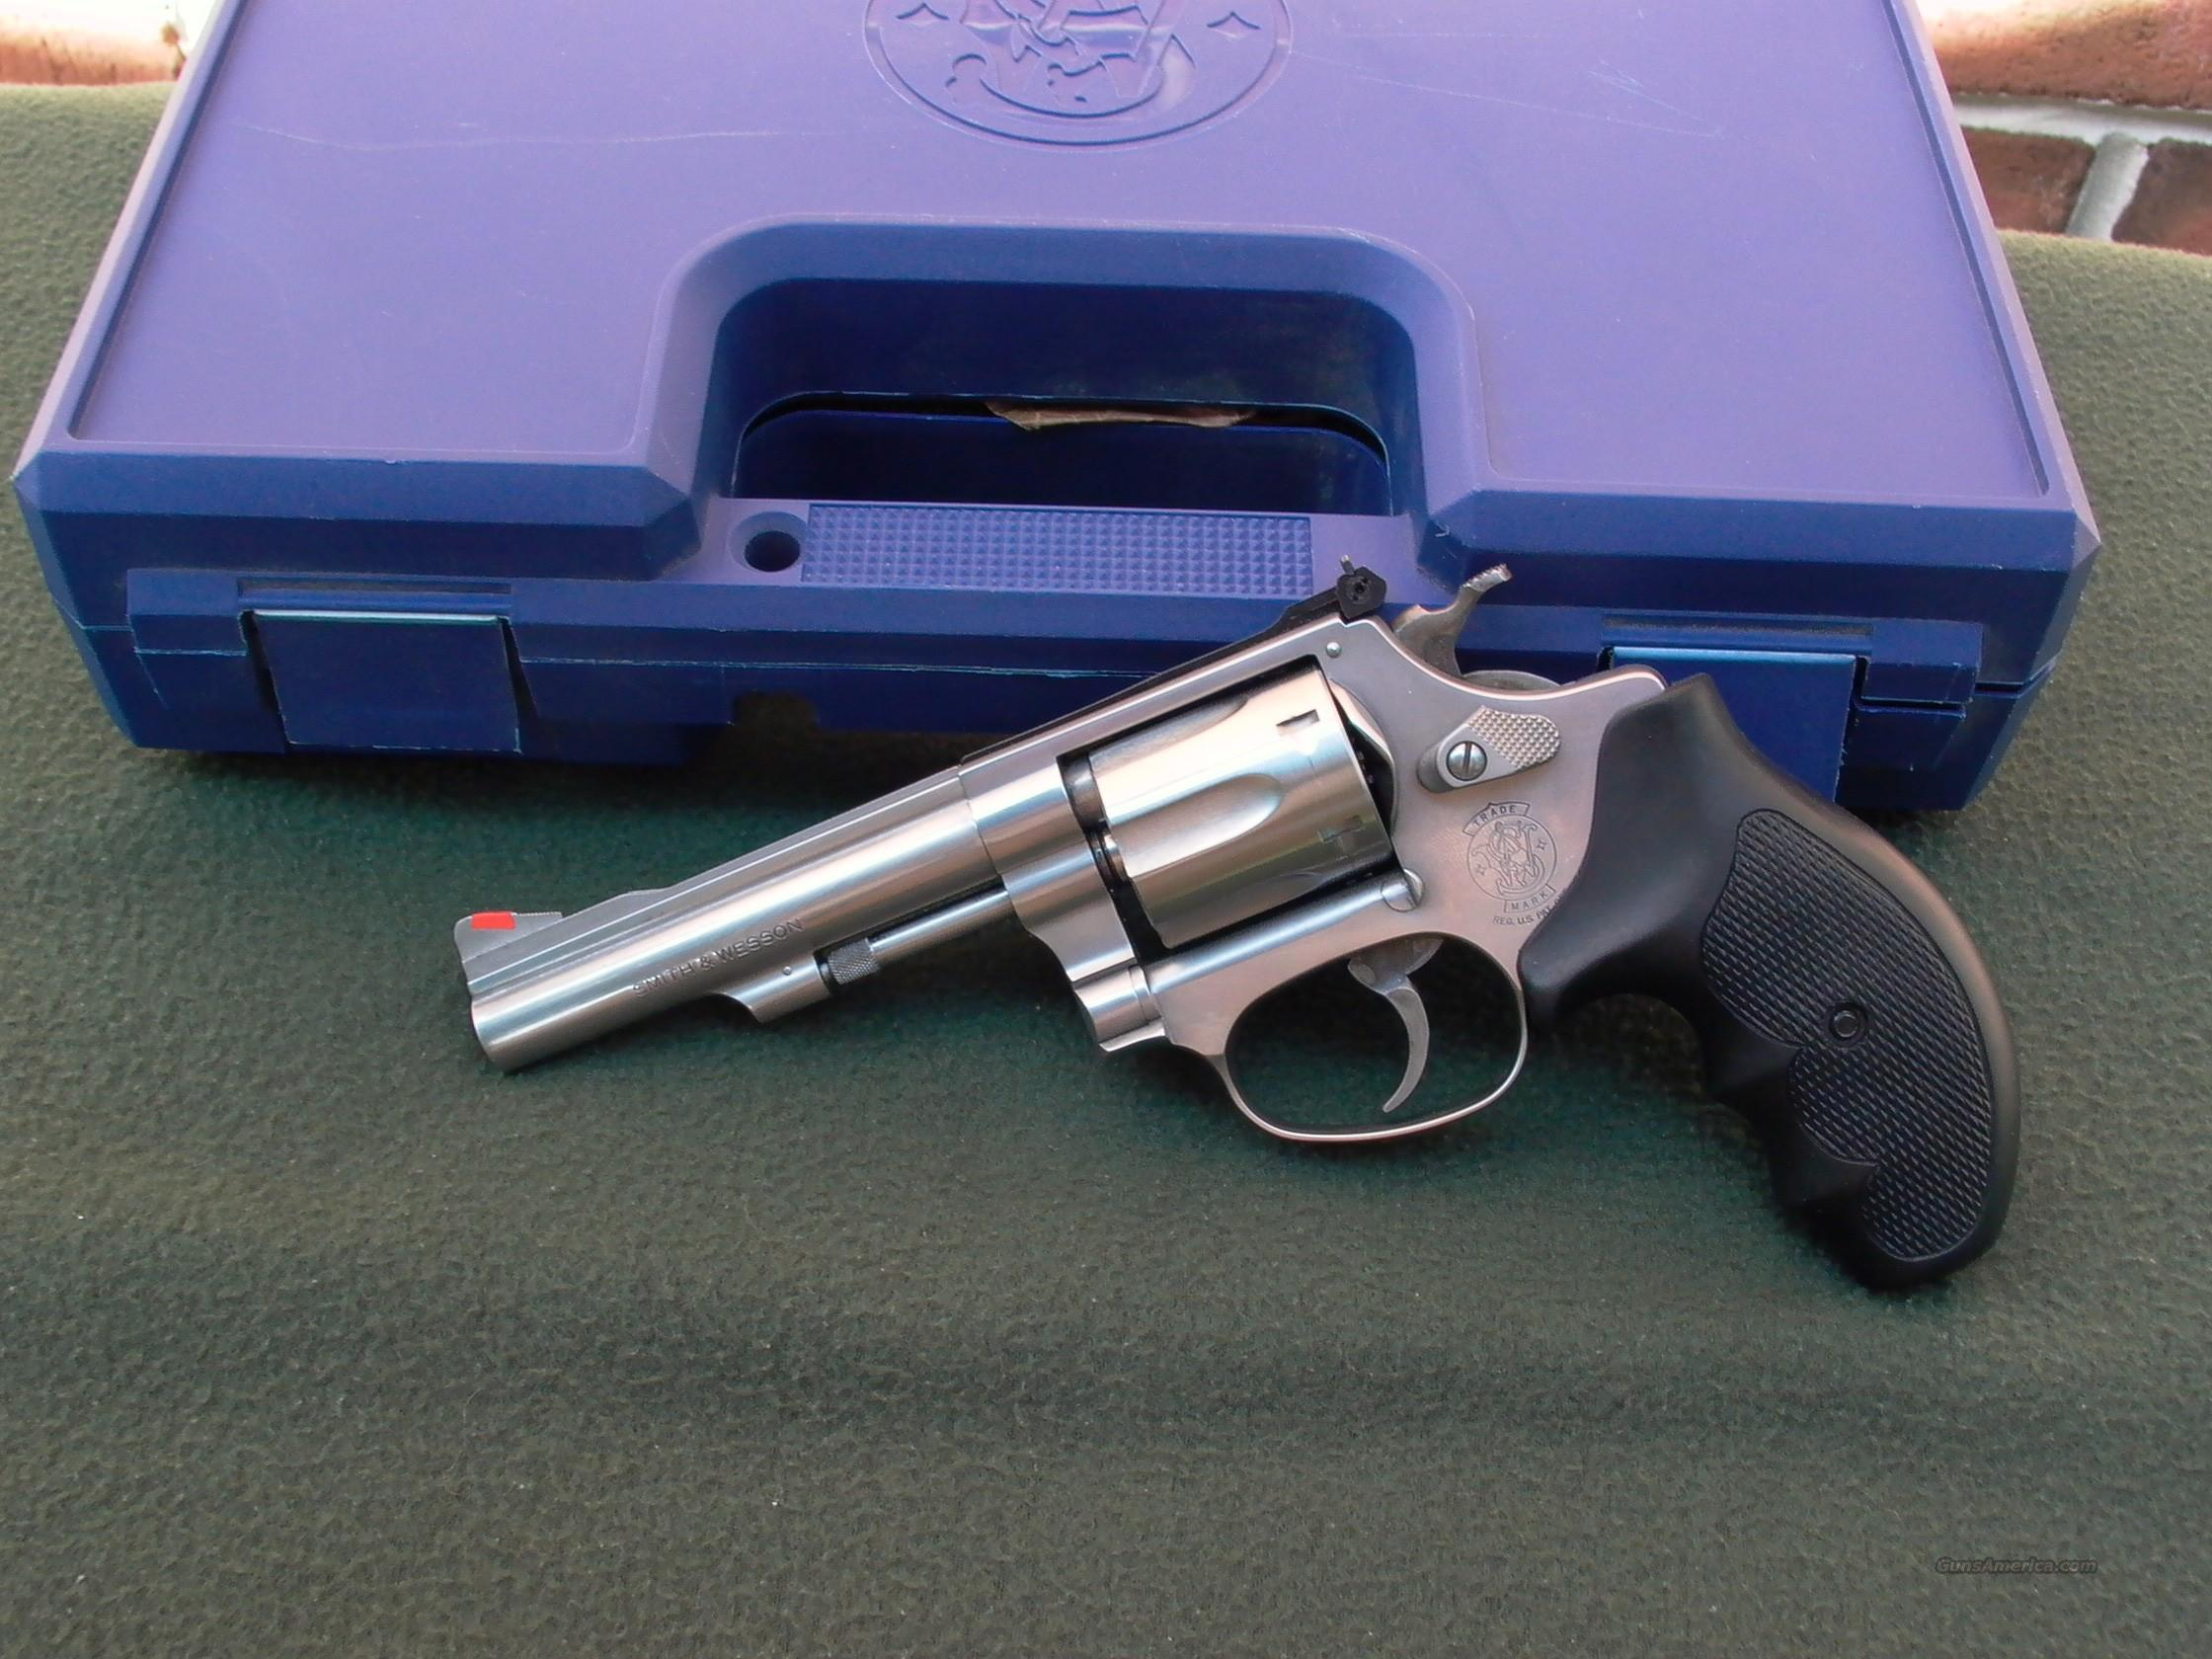 S&W model 63 4 Inch w Factory Box  Guns > Pistols > Smith & Wesson Revolvers > Pocket Pistols